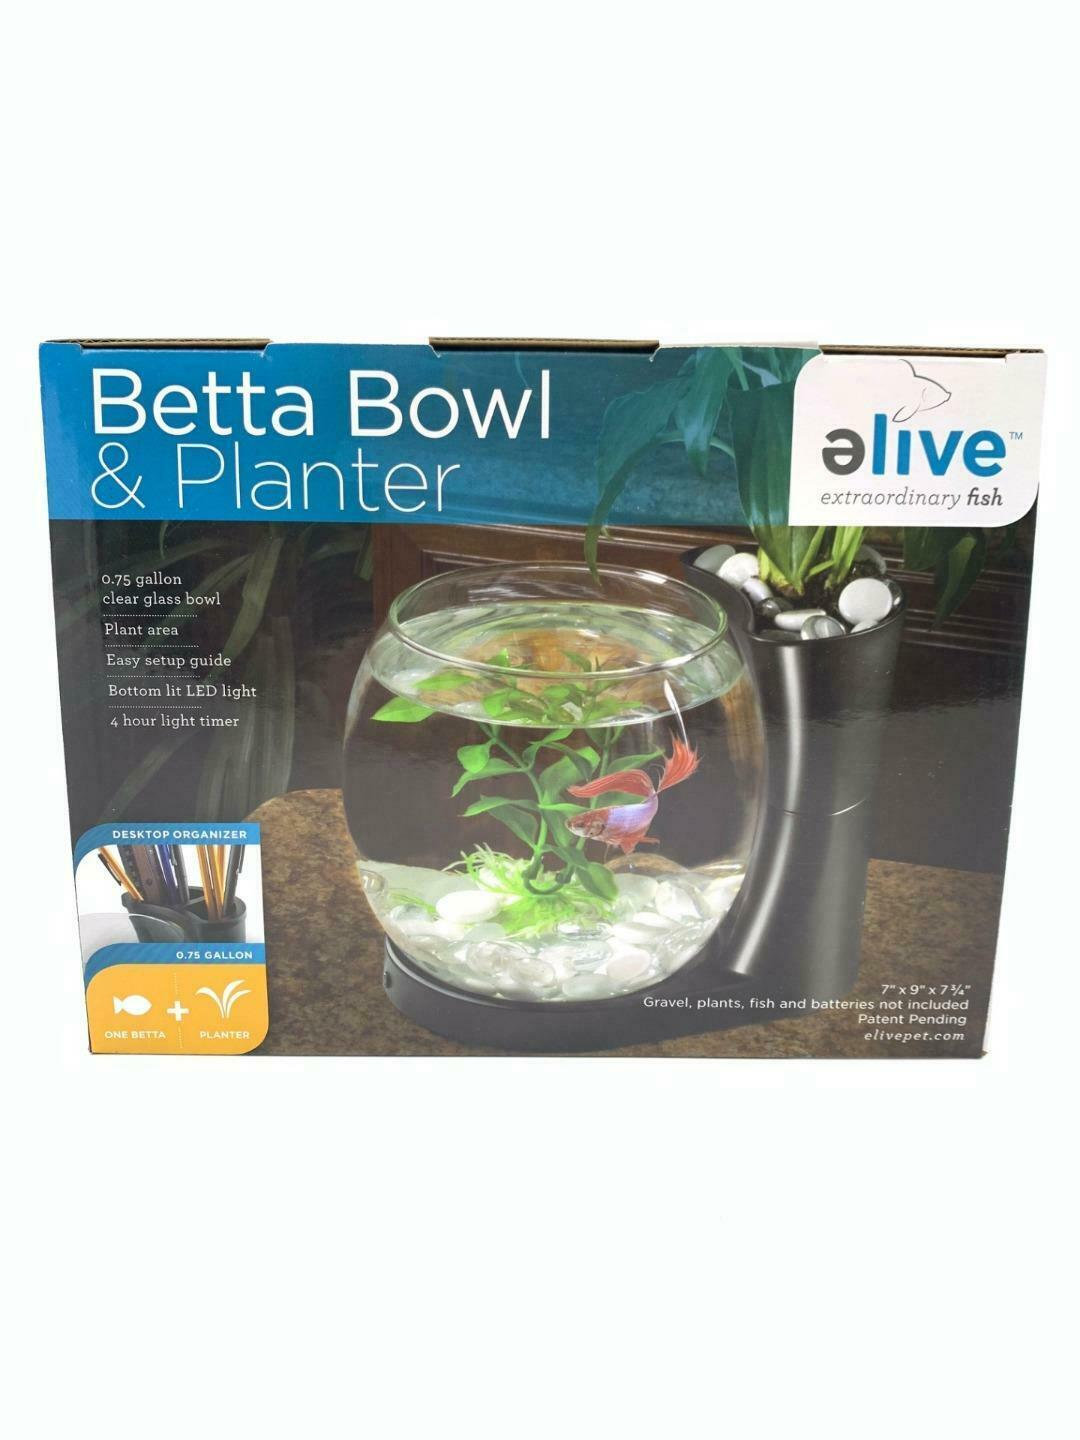 Primary image for Elive Betta Fish Bowl & Planter Set Up Tank Kit Black .75 Gallon LED Light Timer